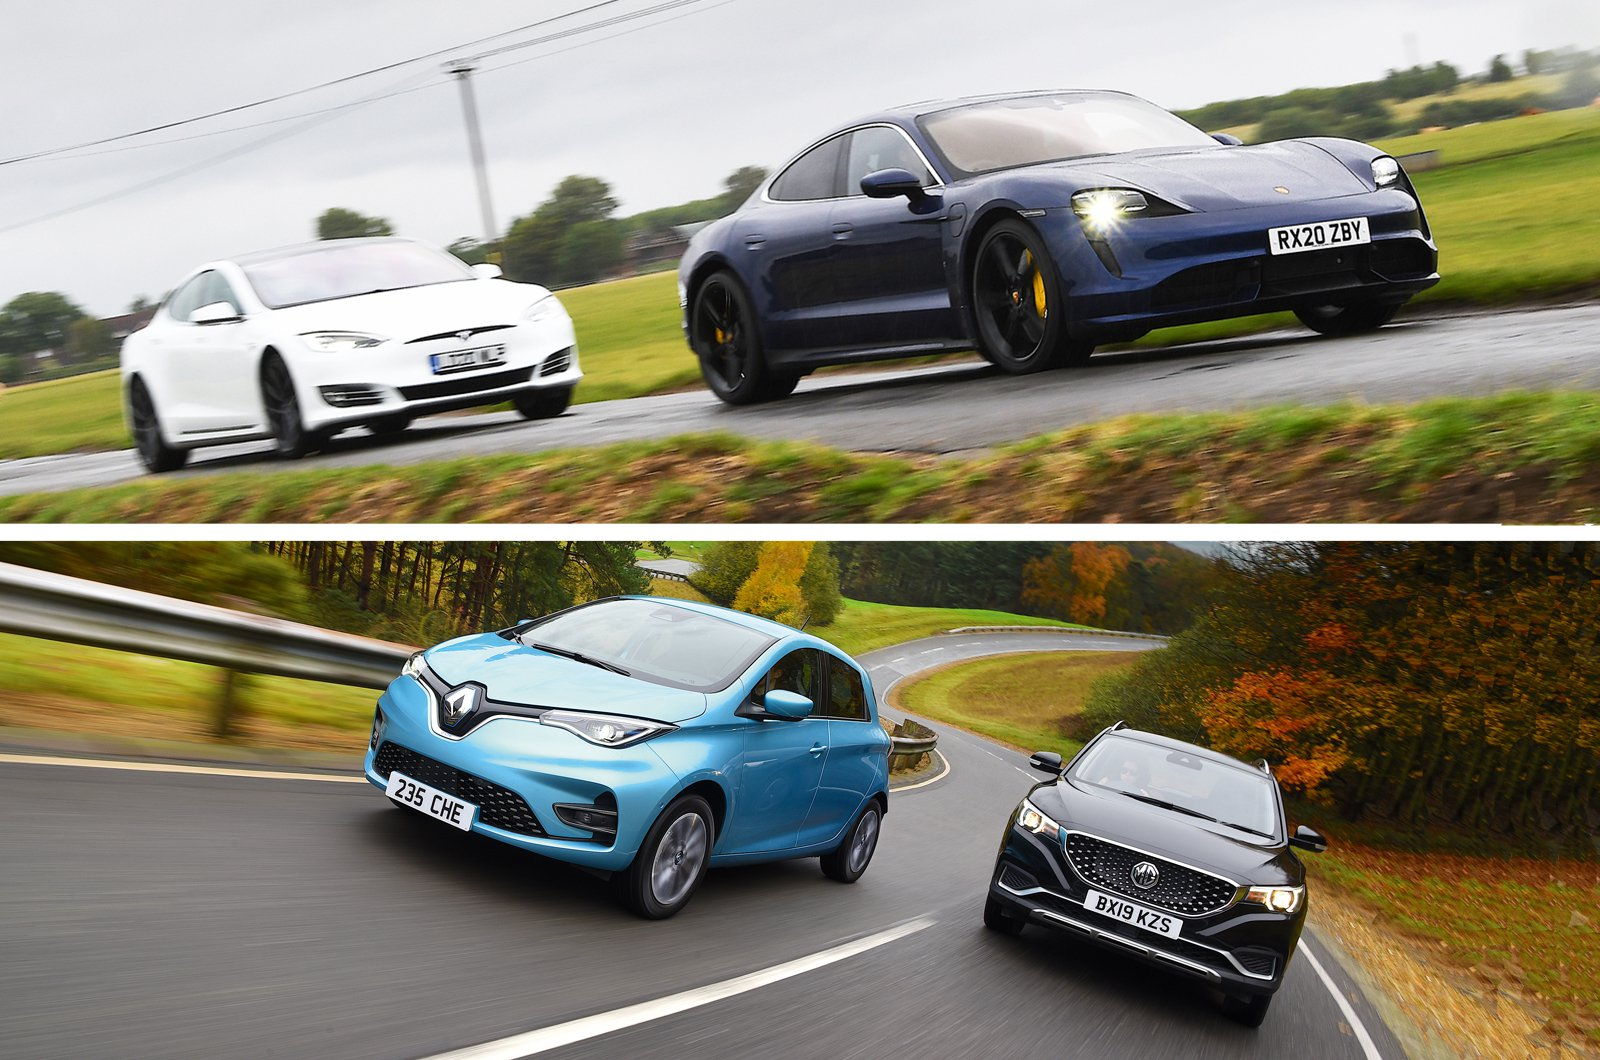 Tesla Model S with Porsche Taycan and Renault Zoe with MG ZS EV